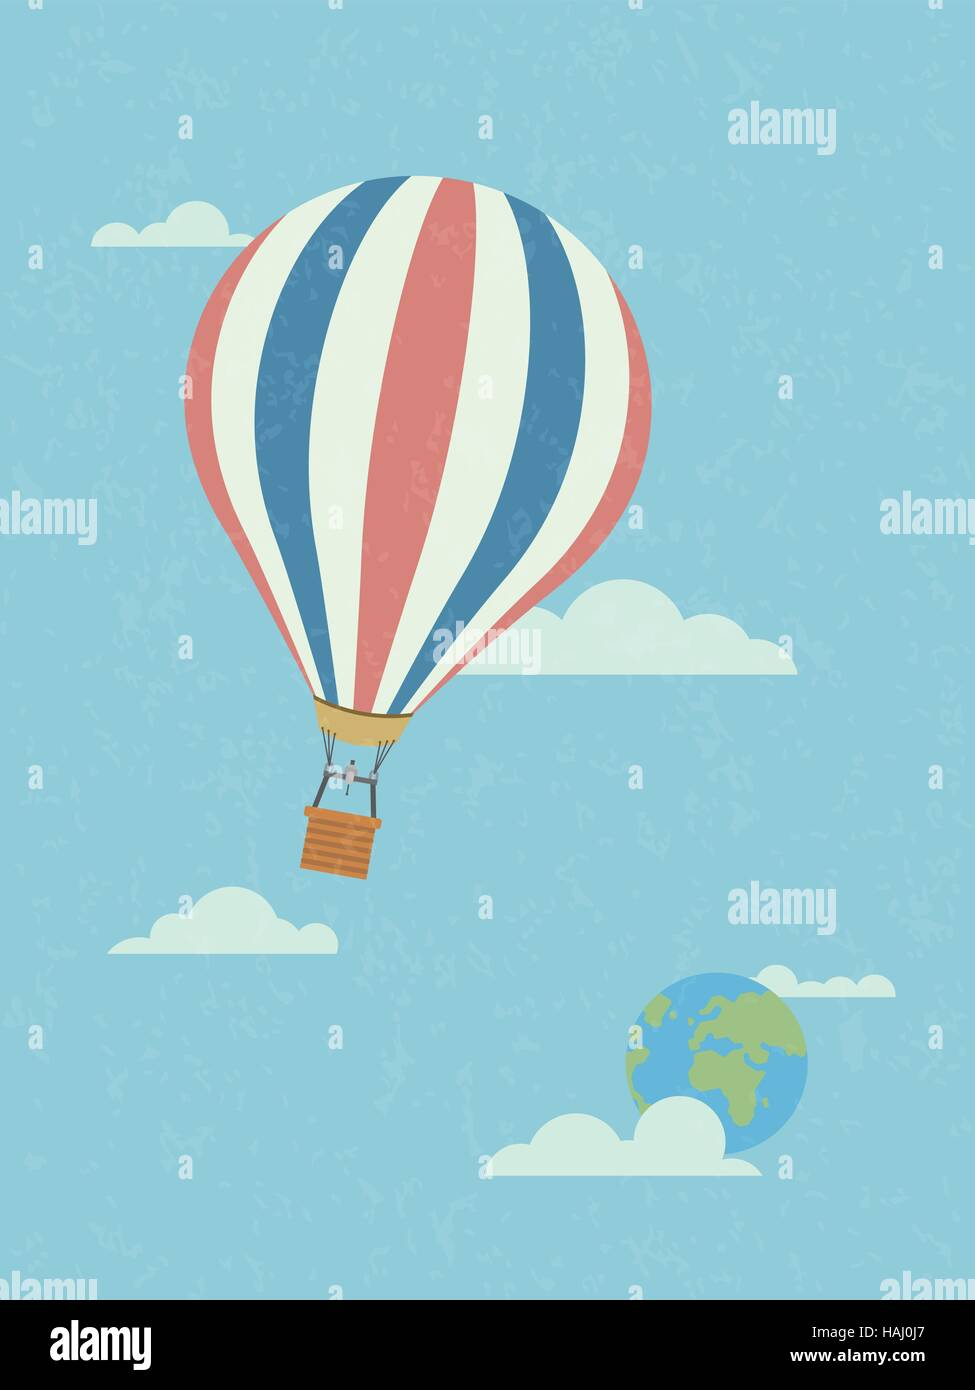 Global travel concept, hot air balloon in the sky leaving planet earth. Retro style, grunge texture, pastel colors - Stock Image